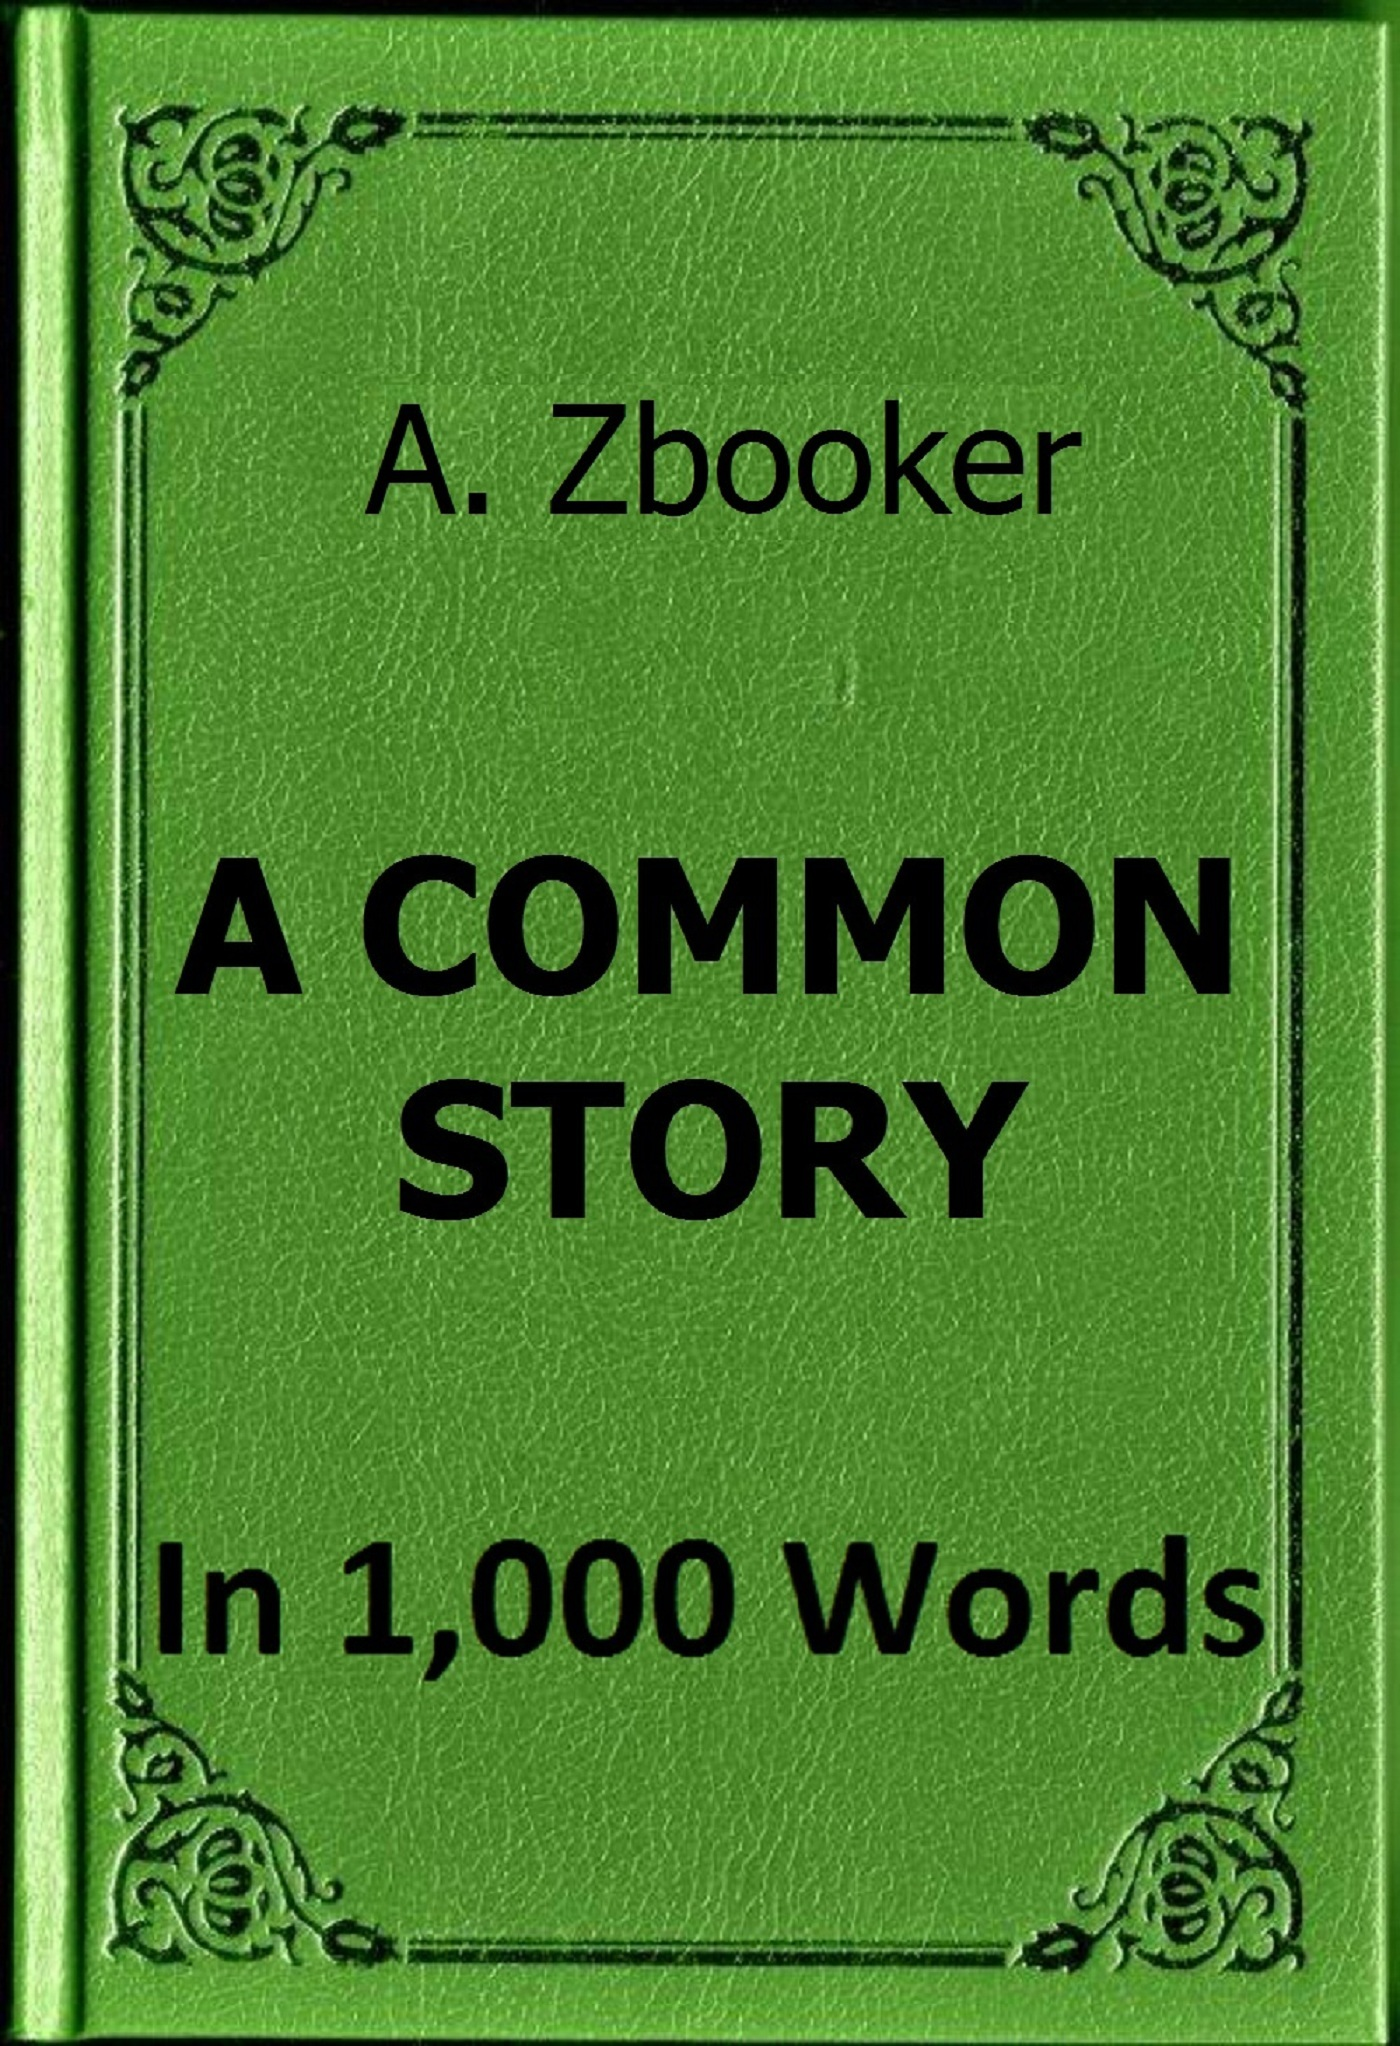 Alex Zbooker - Goncharov: A Common Story in 1,000 Words